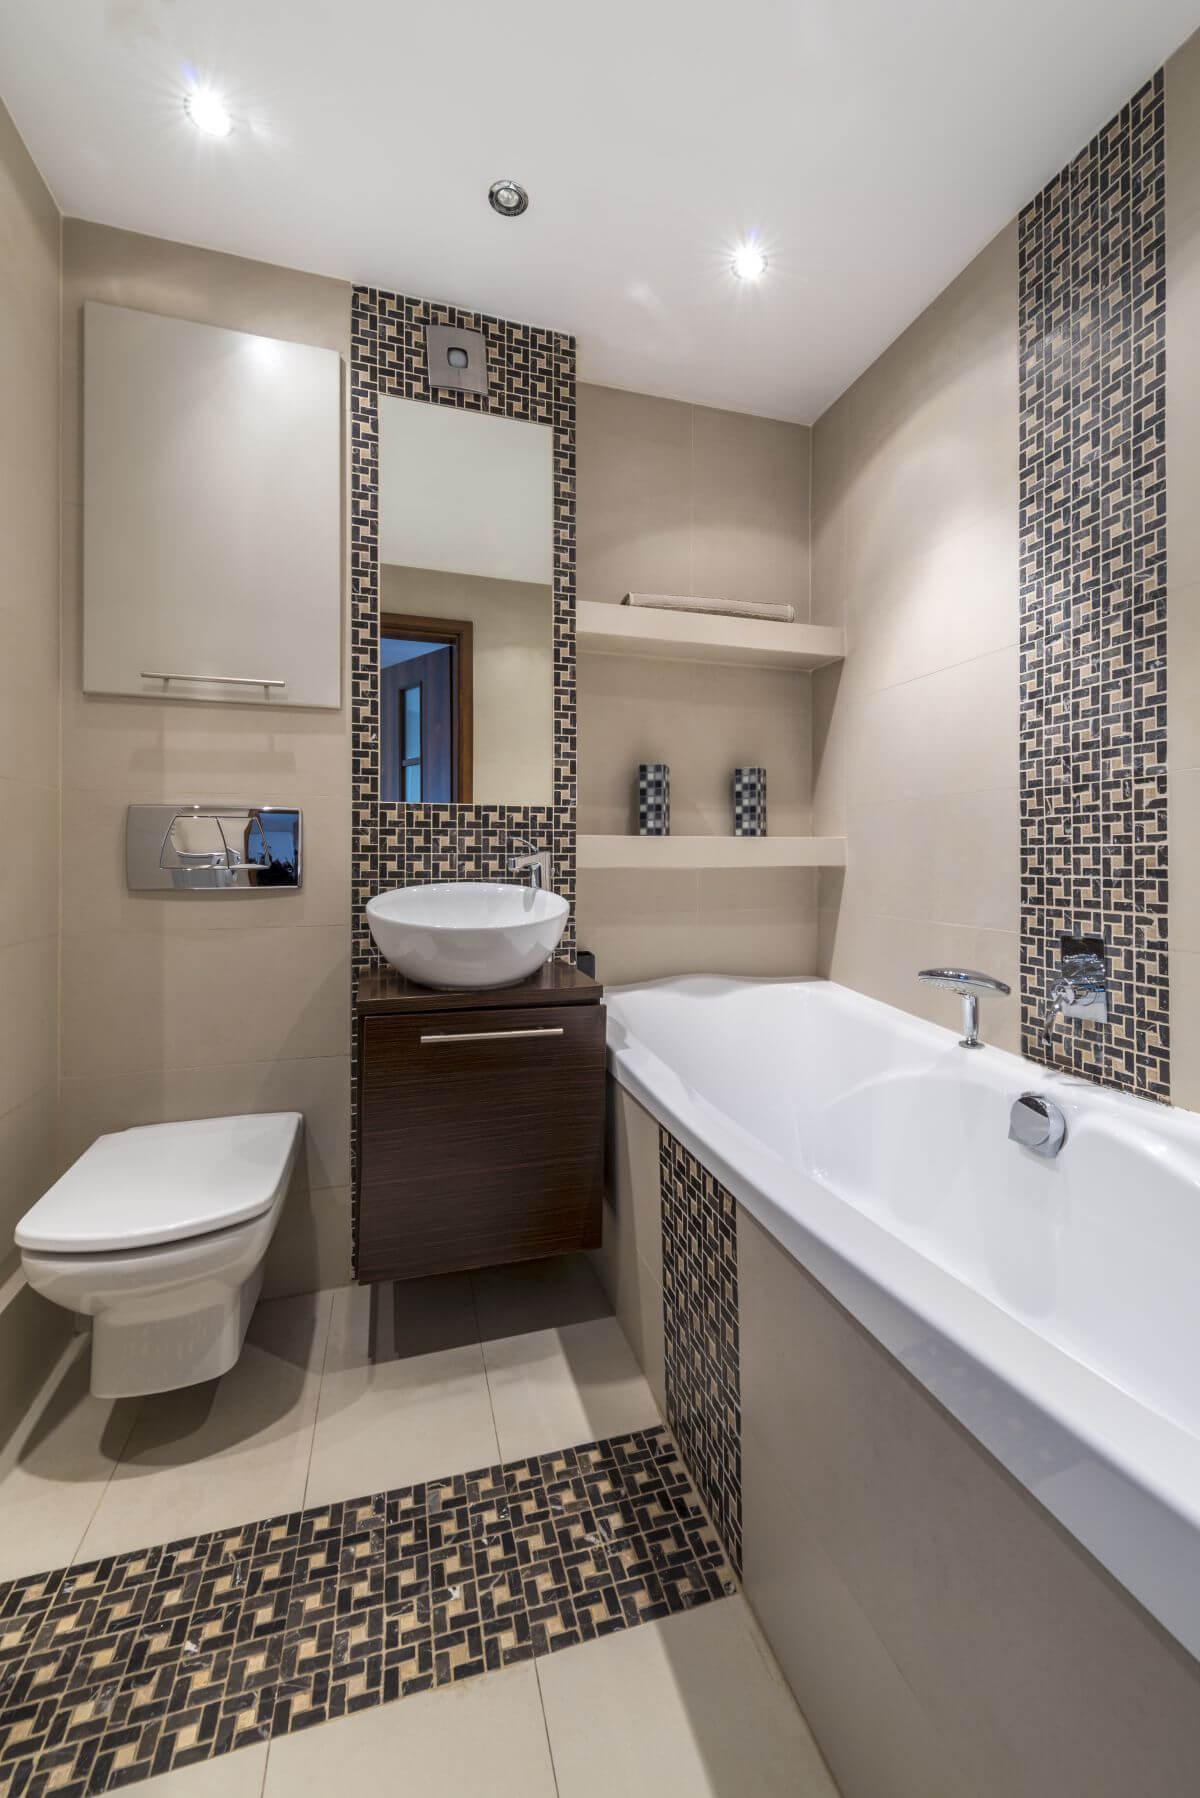 minimalist design with repeated tile patterns - Design Ideas For Small Bathroom